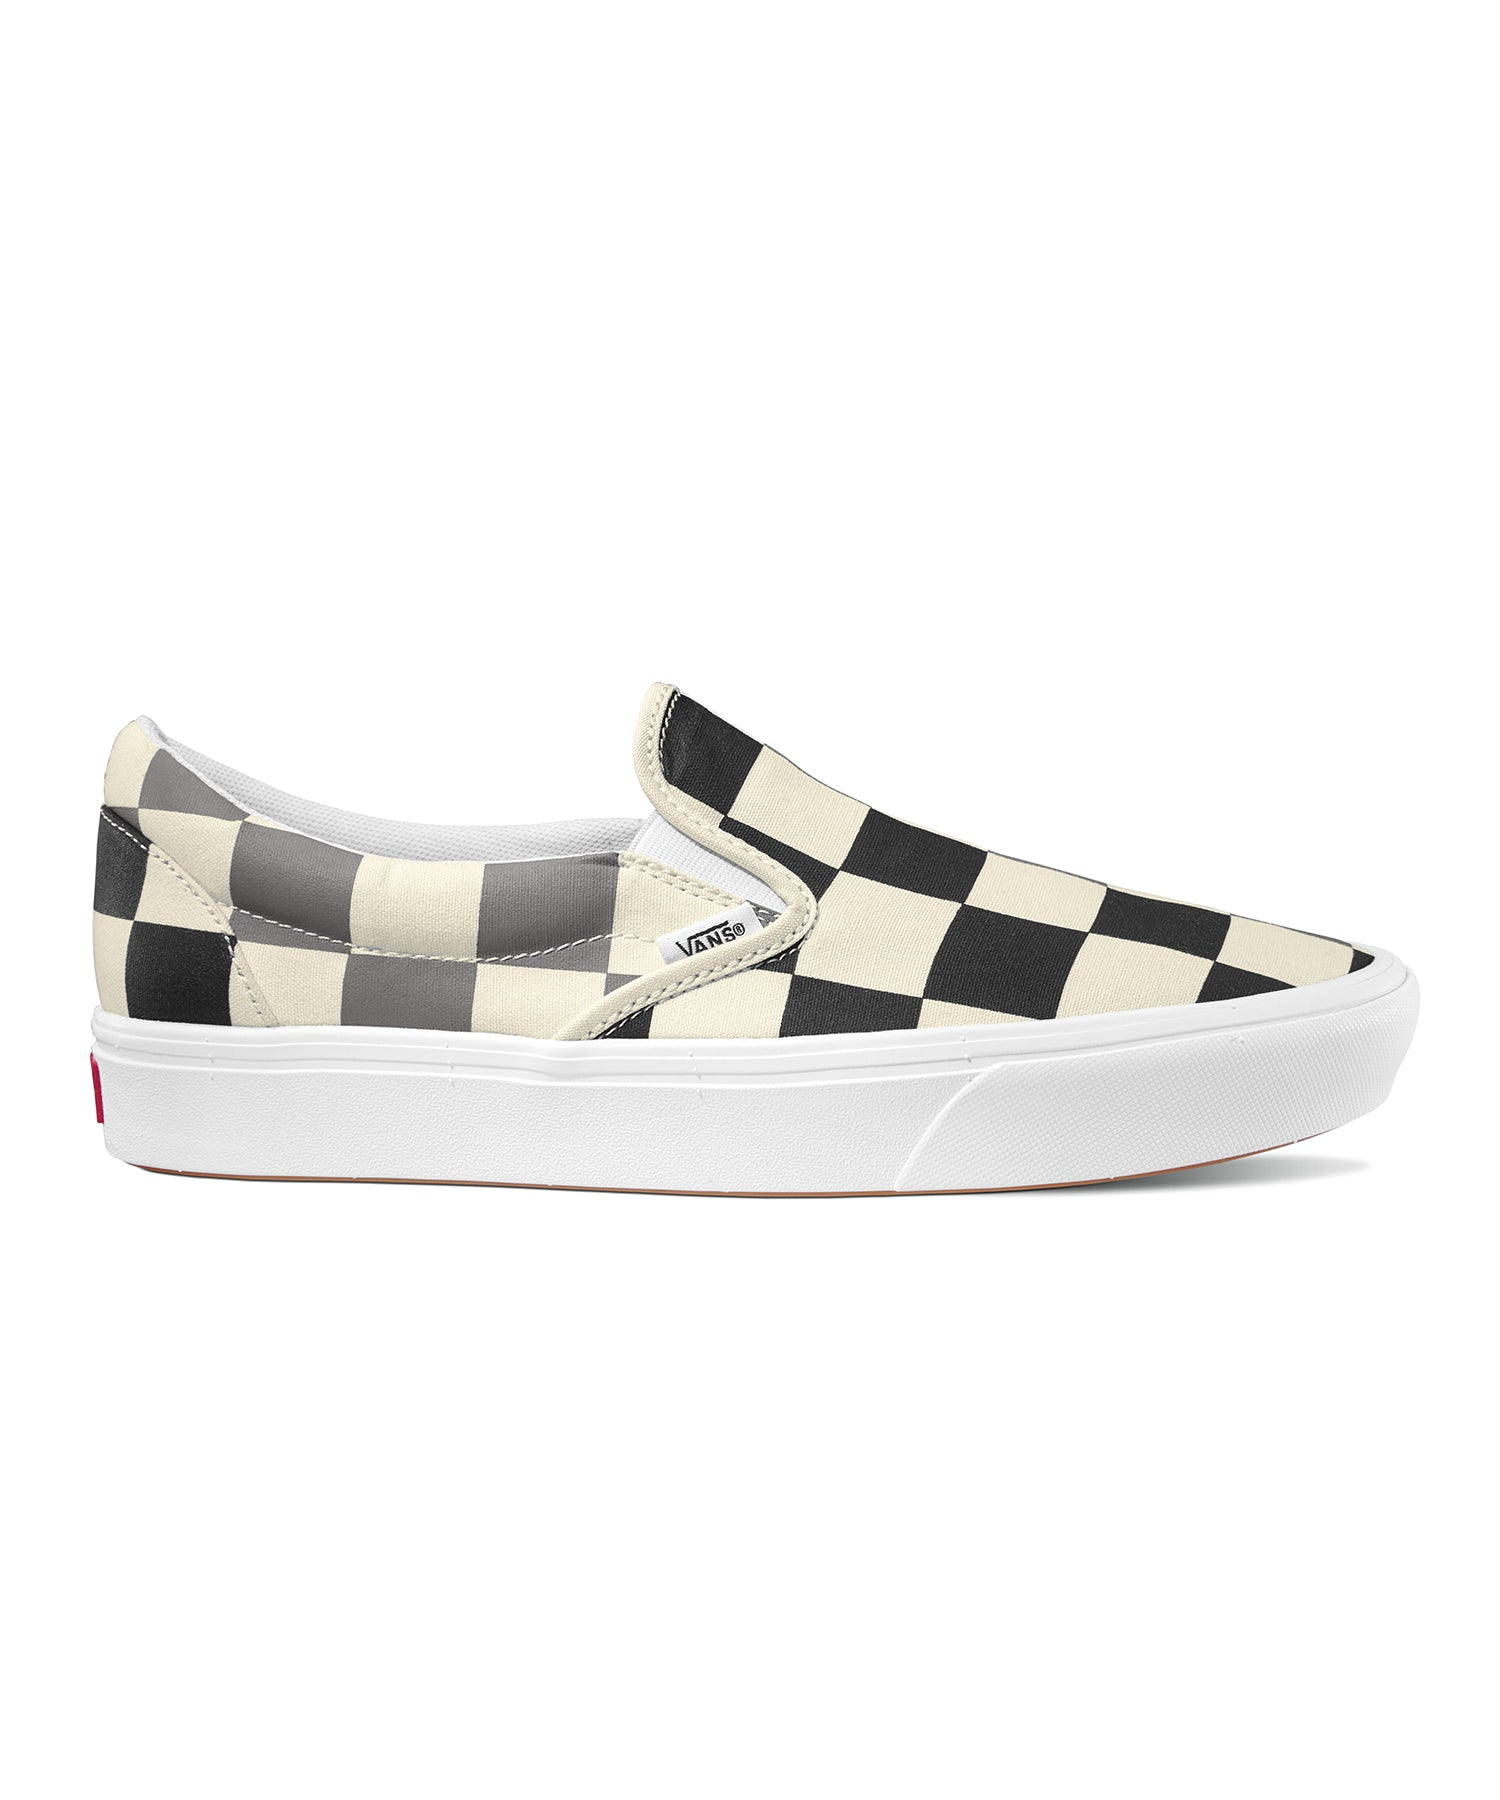 Vans Half Big Checker ComfyCush Slip-on